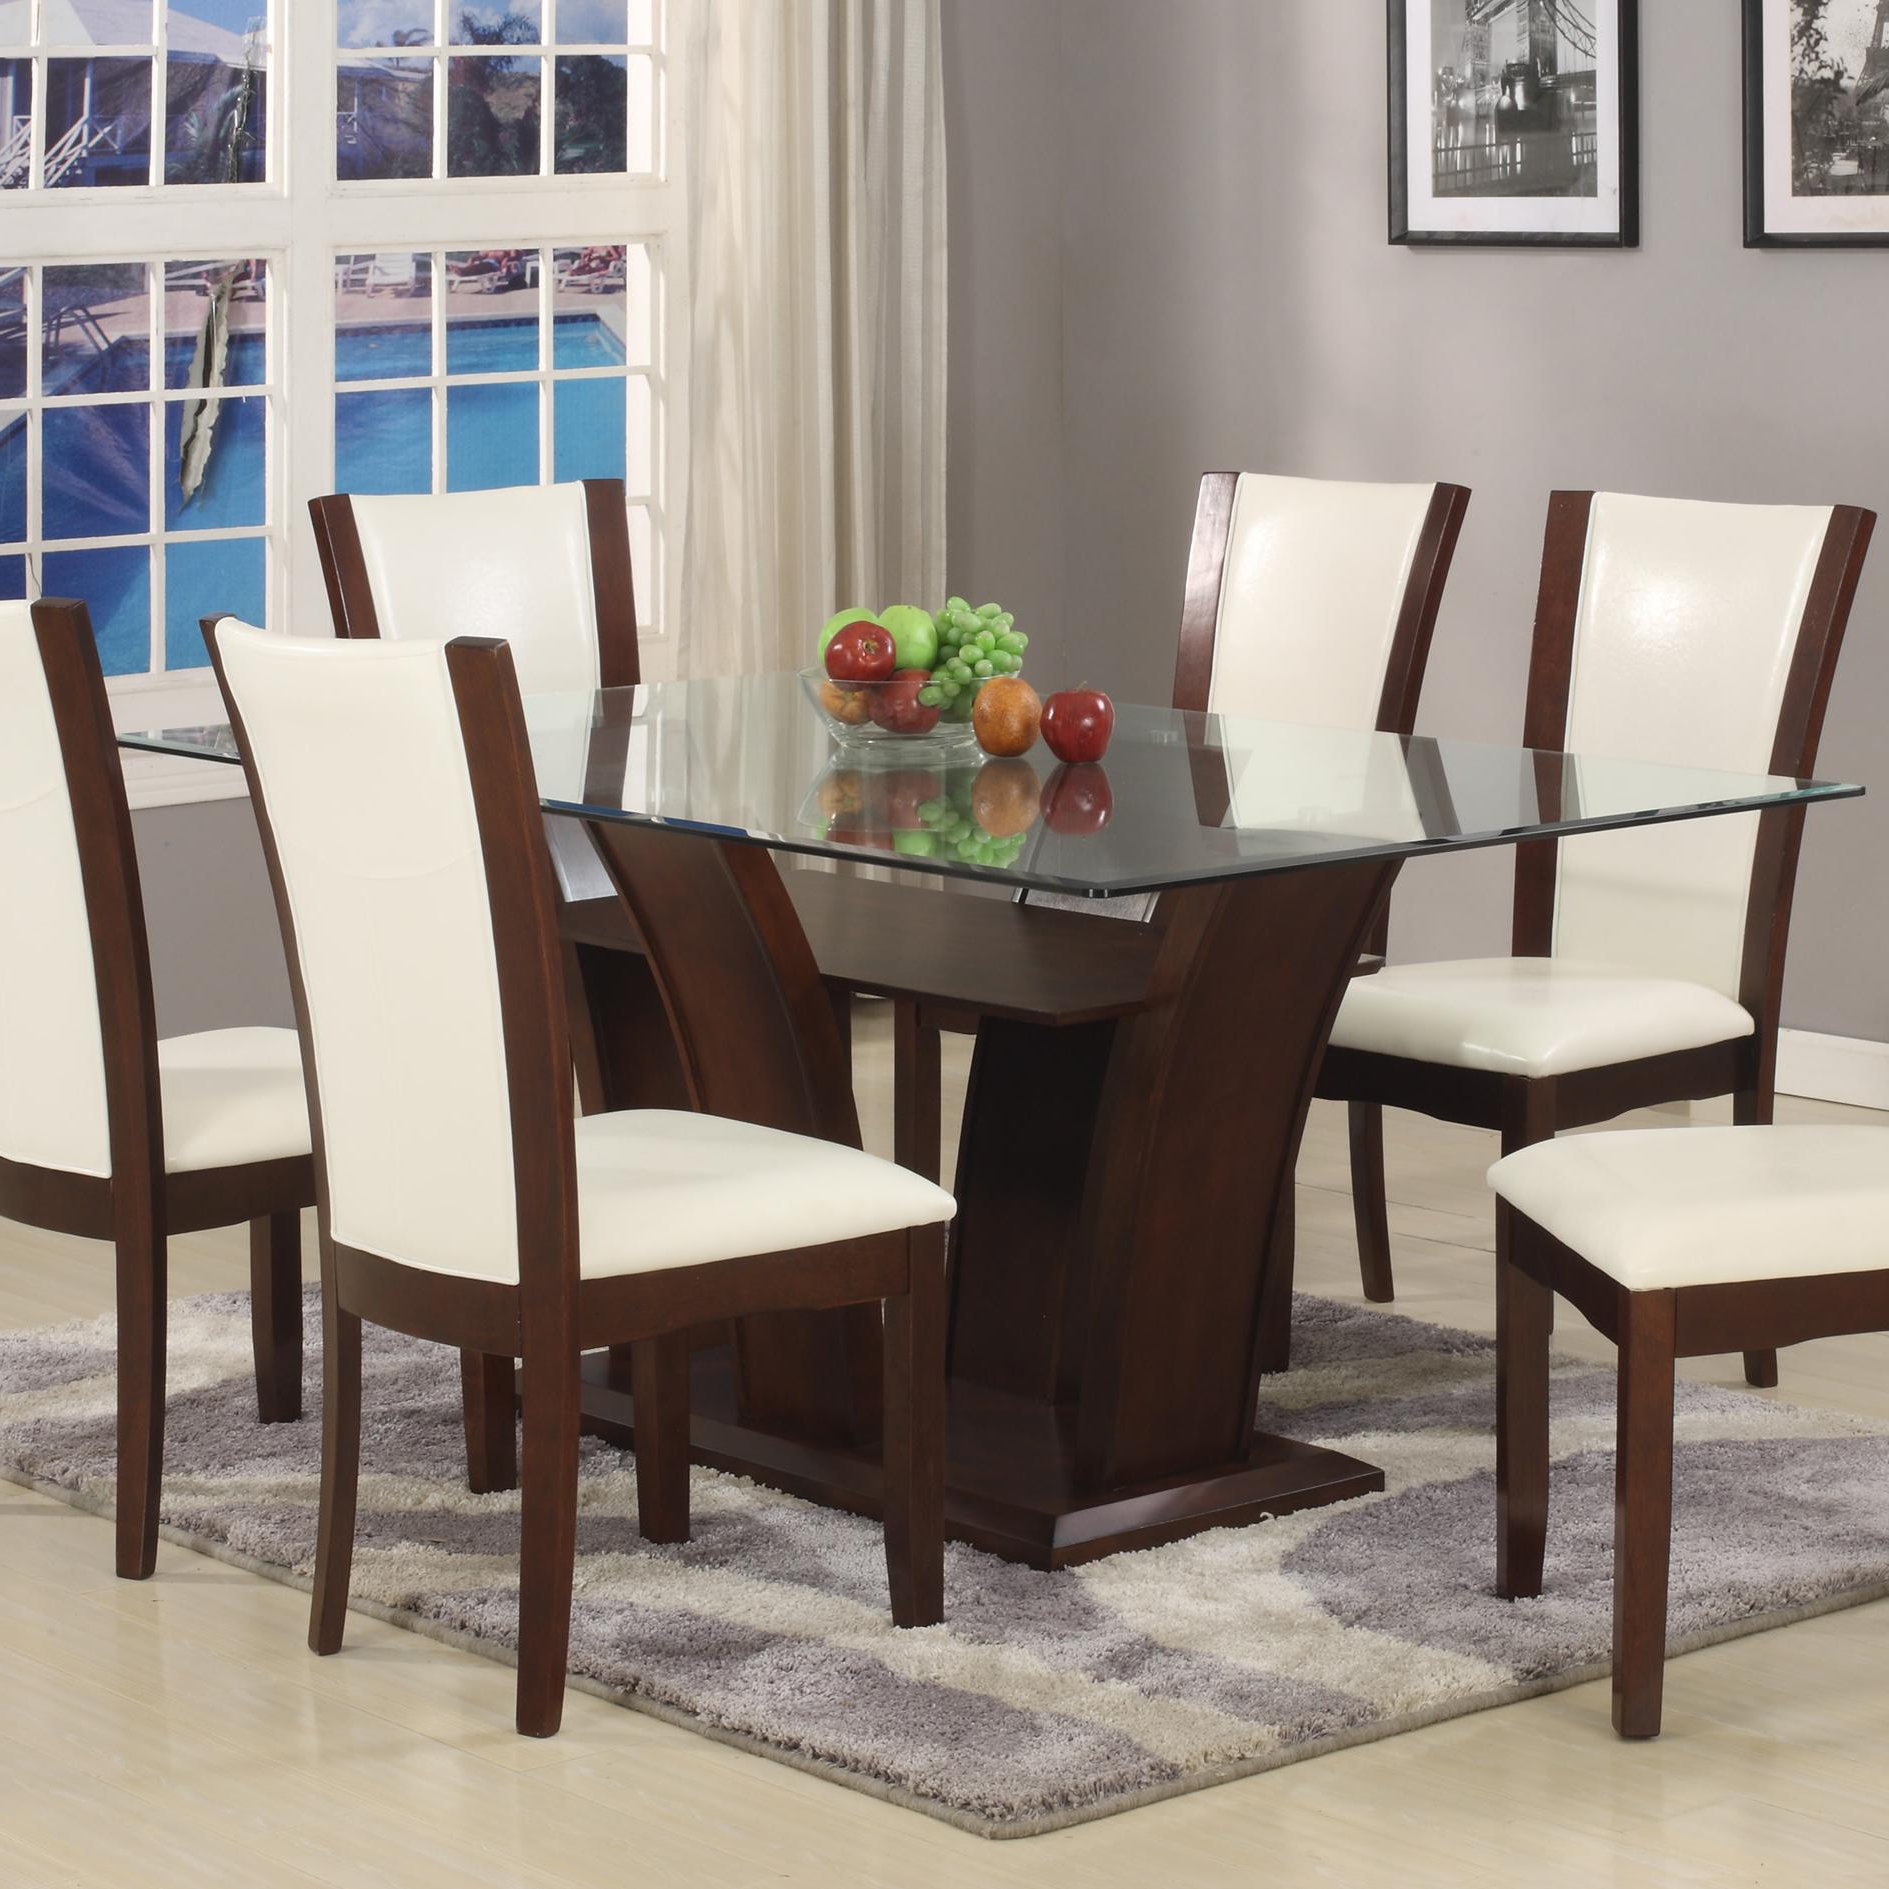 Rectangular Glass Top Dining Tables Regarding Favorite Camelia White Dining Table (View 3 of 25)